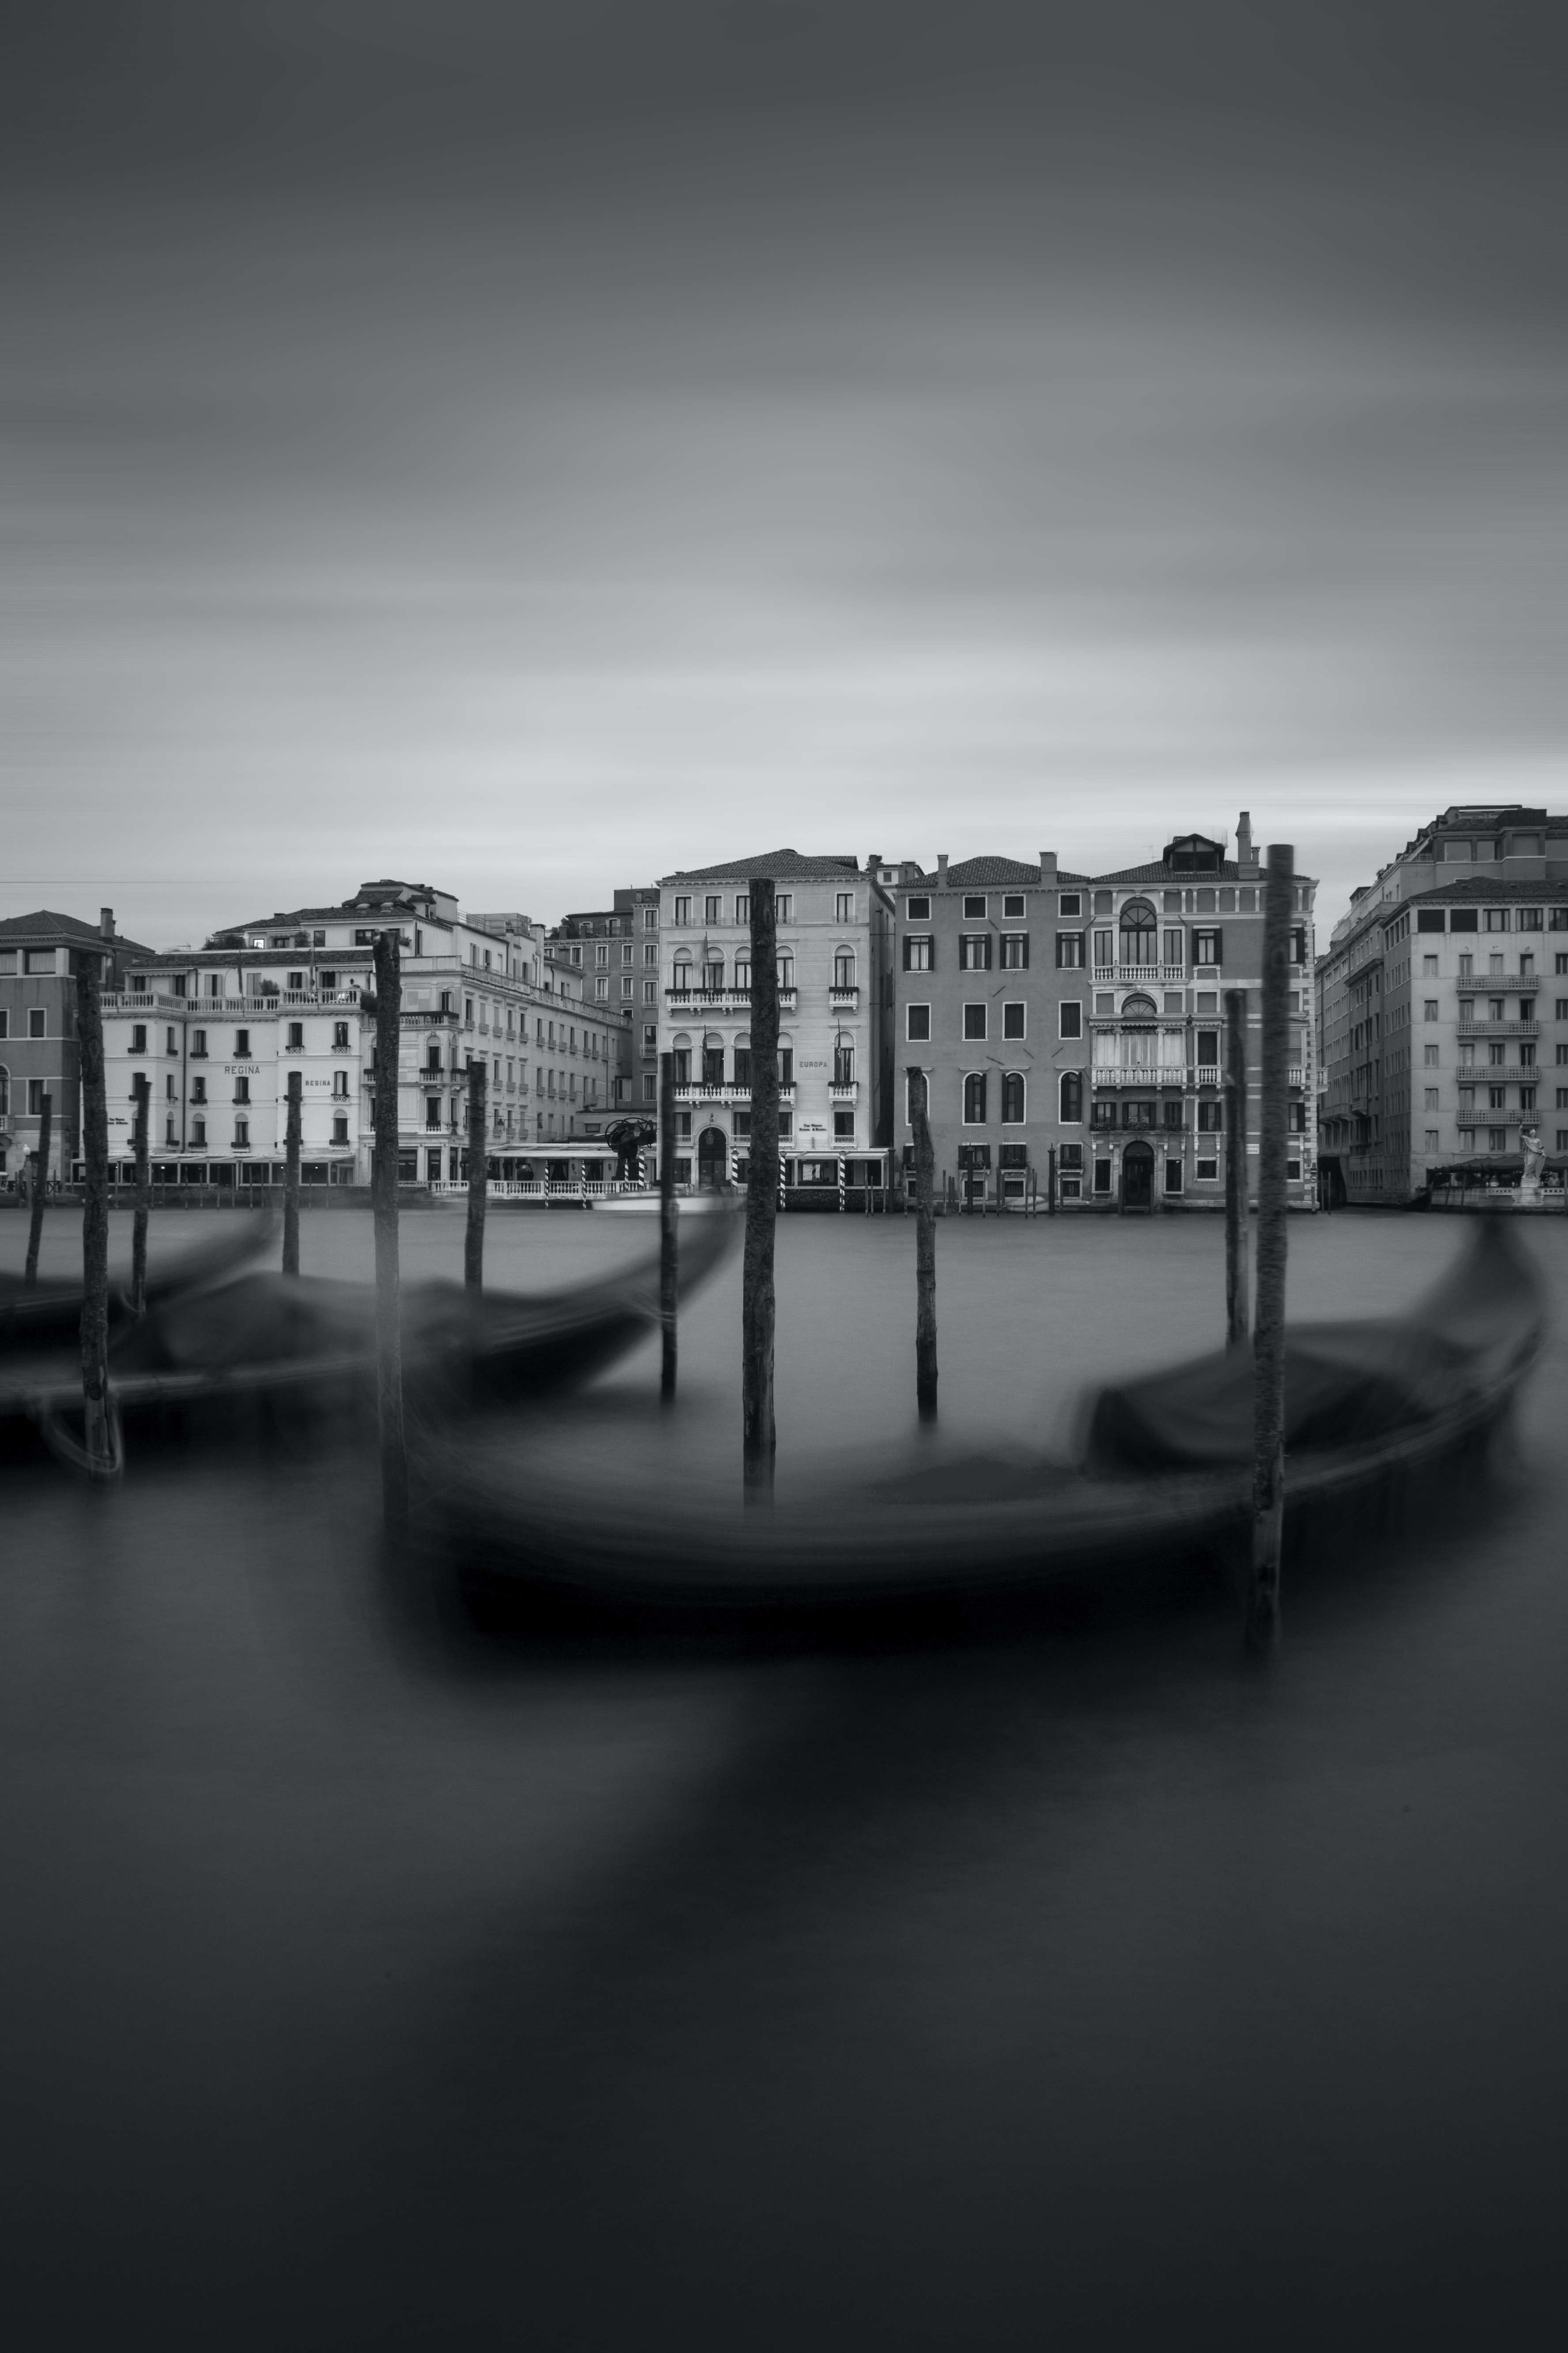 grayscale photography of two canoe in front of city buildings